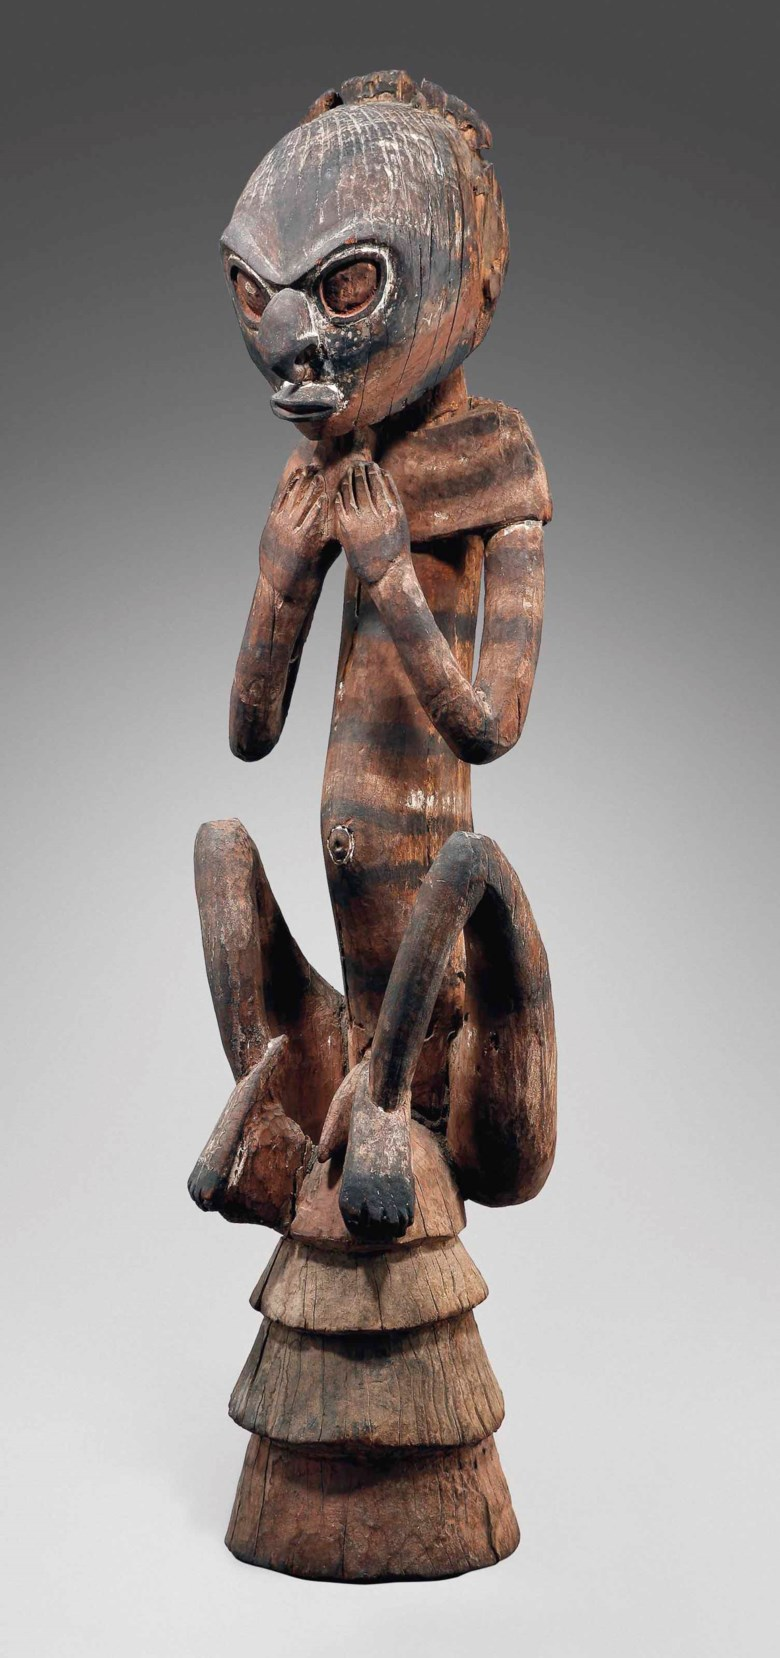 A ceremonial roof figure, Middle Sepik, Yuat river, Papua New Guinea, 1600-1890. Height 41¾ in (106 cm). Sold for €2,505,500 on 19 June 2013 at Christie's in Paris